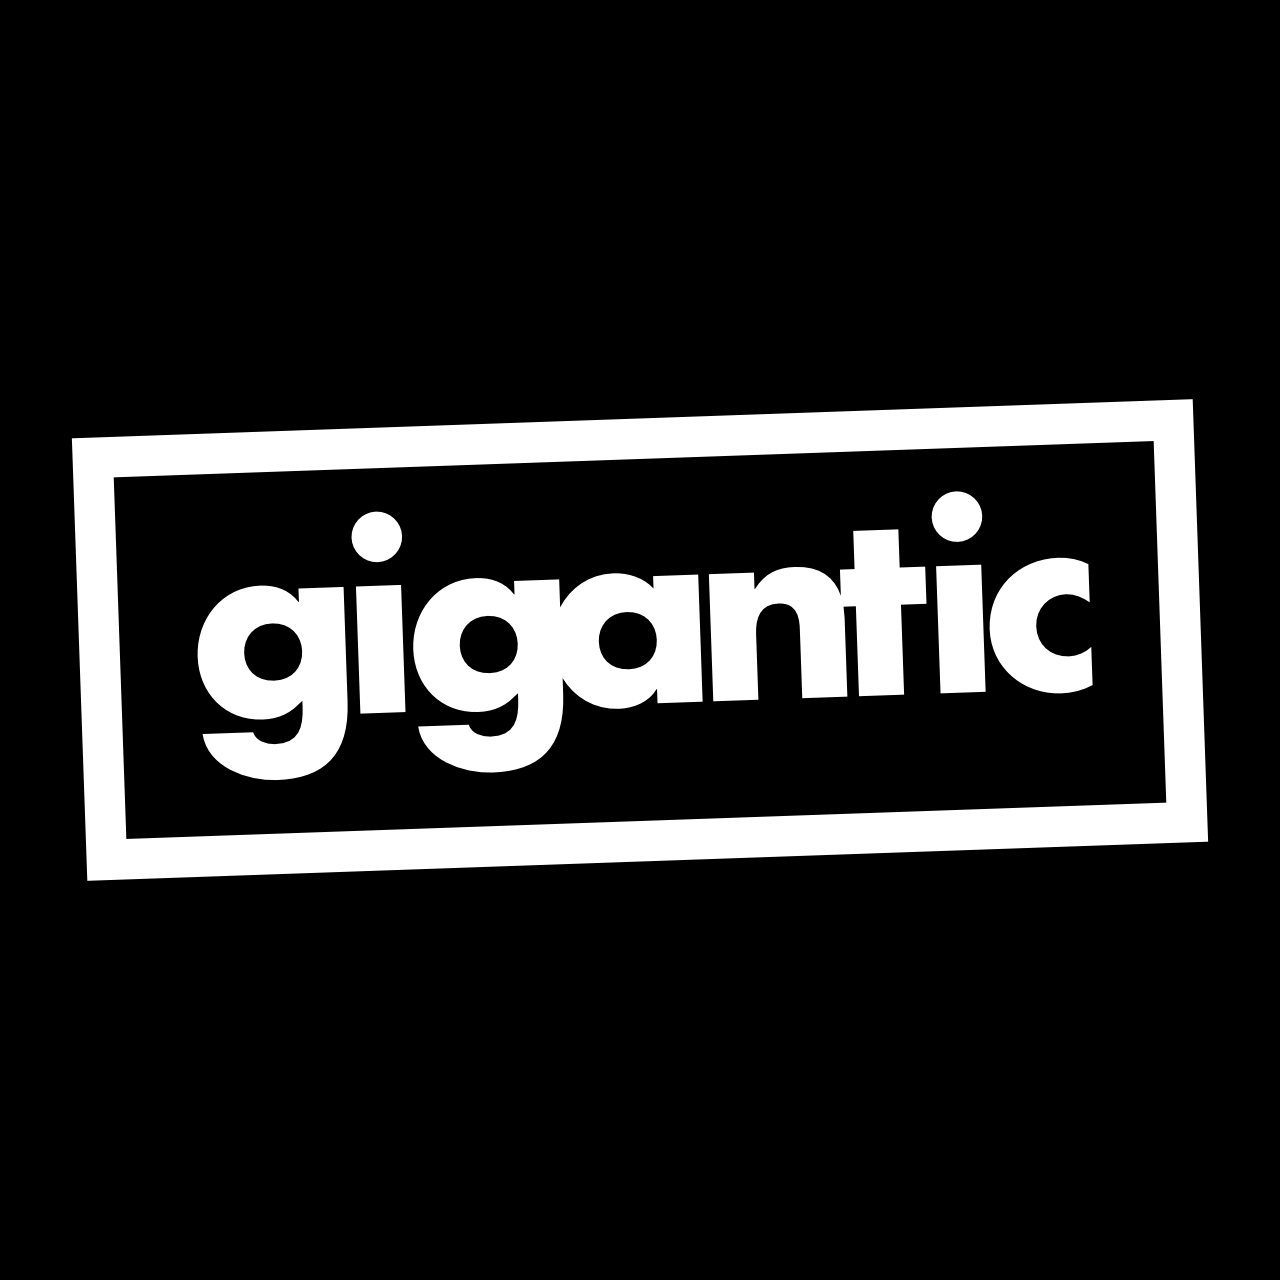 Gigantic Logo White